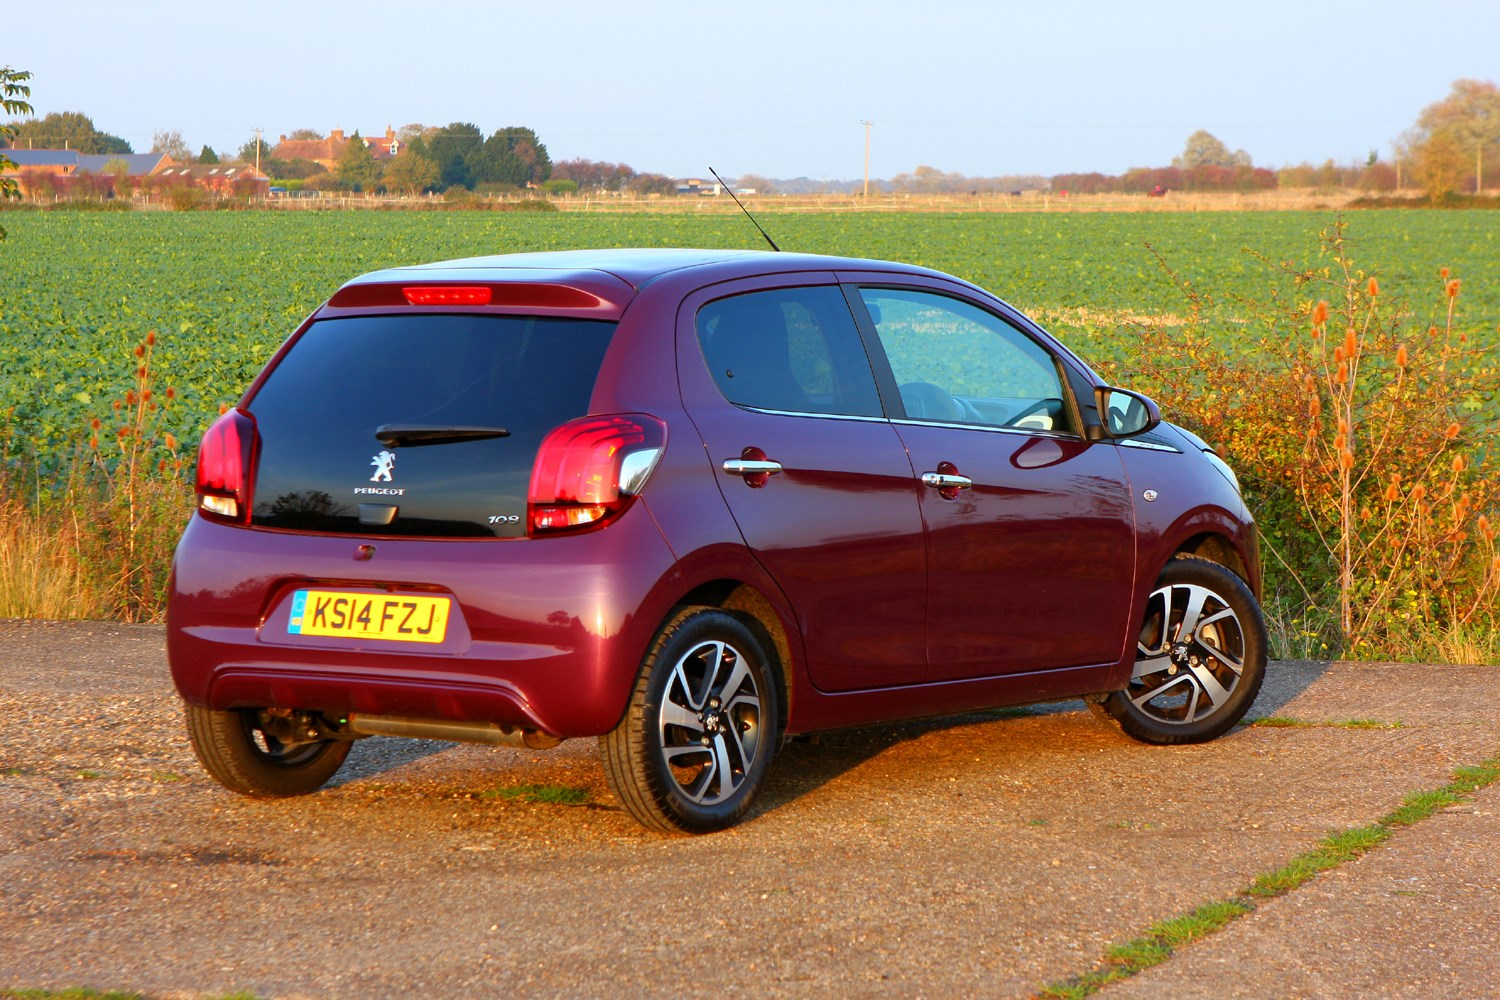 peugeot 108 hatchback review 2014 parkers. Black Bedroom Furniture Sets. Home Design Ideas